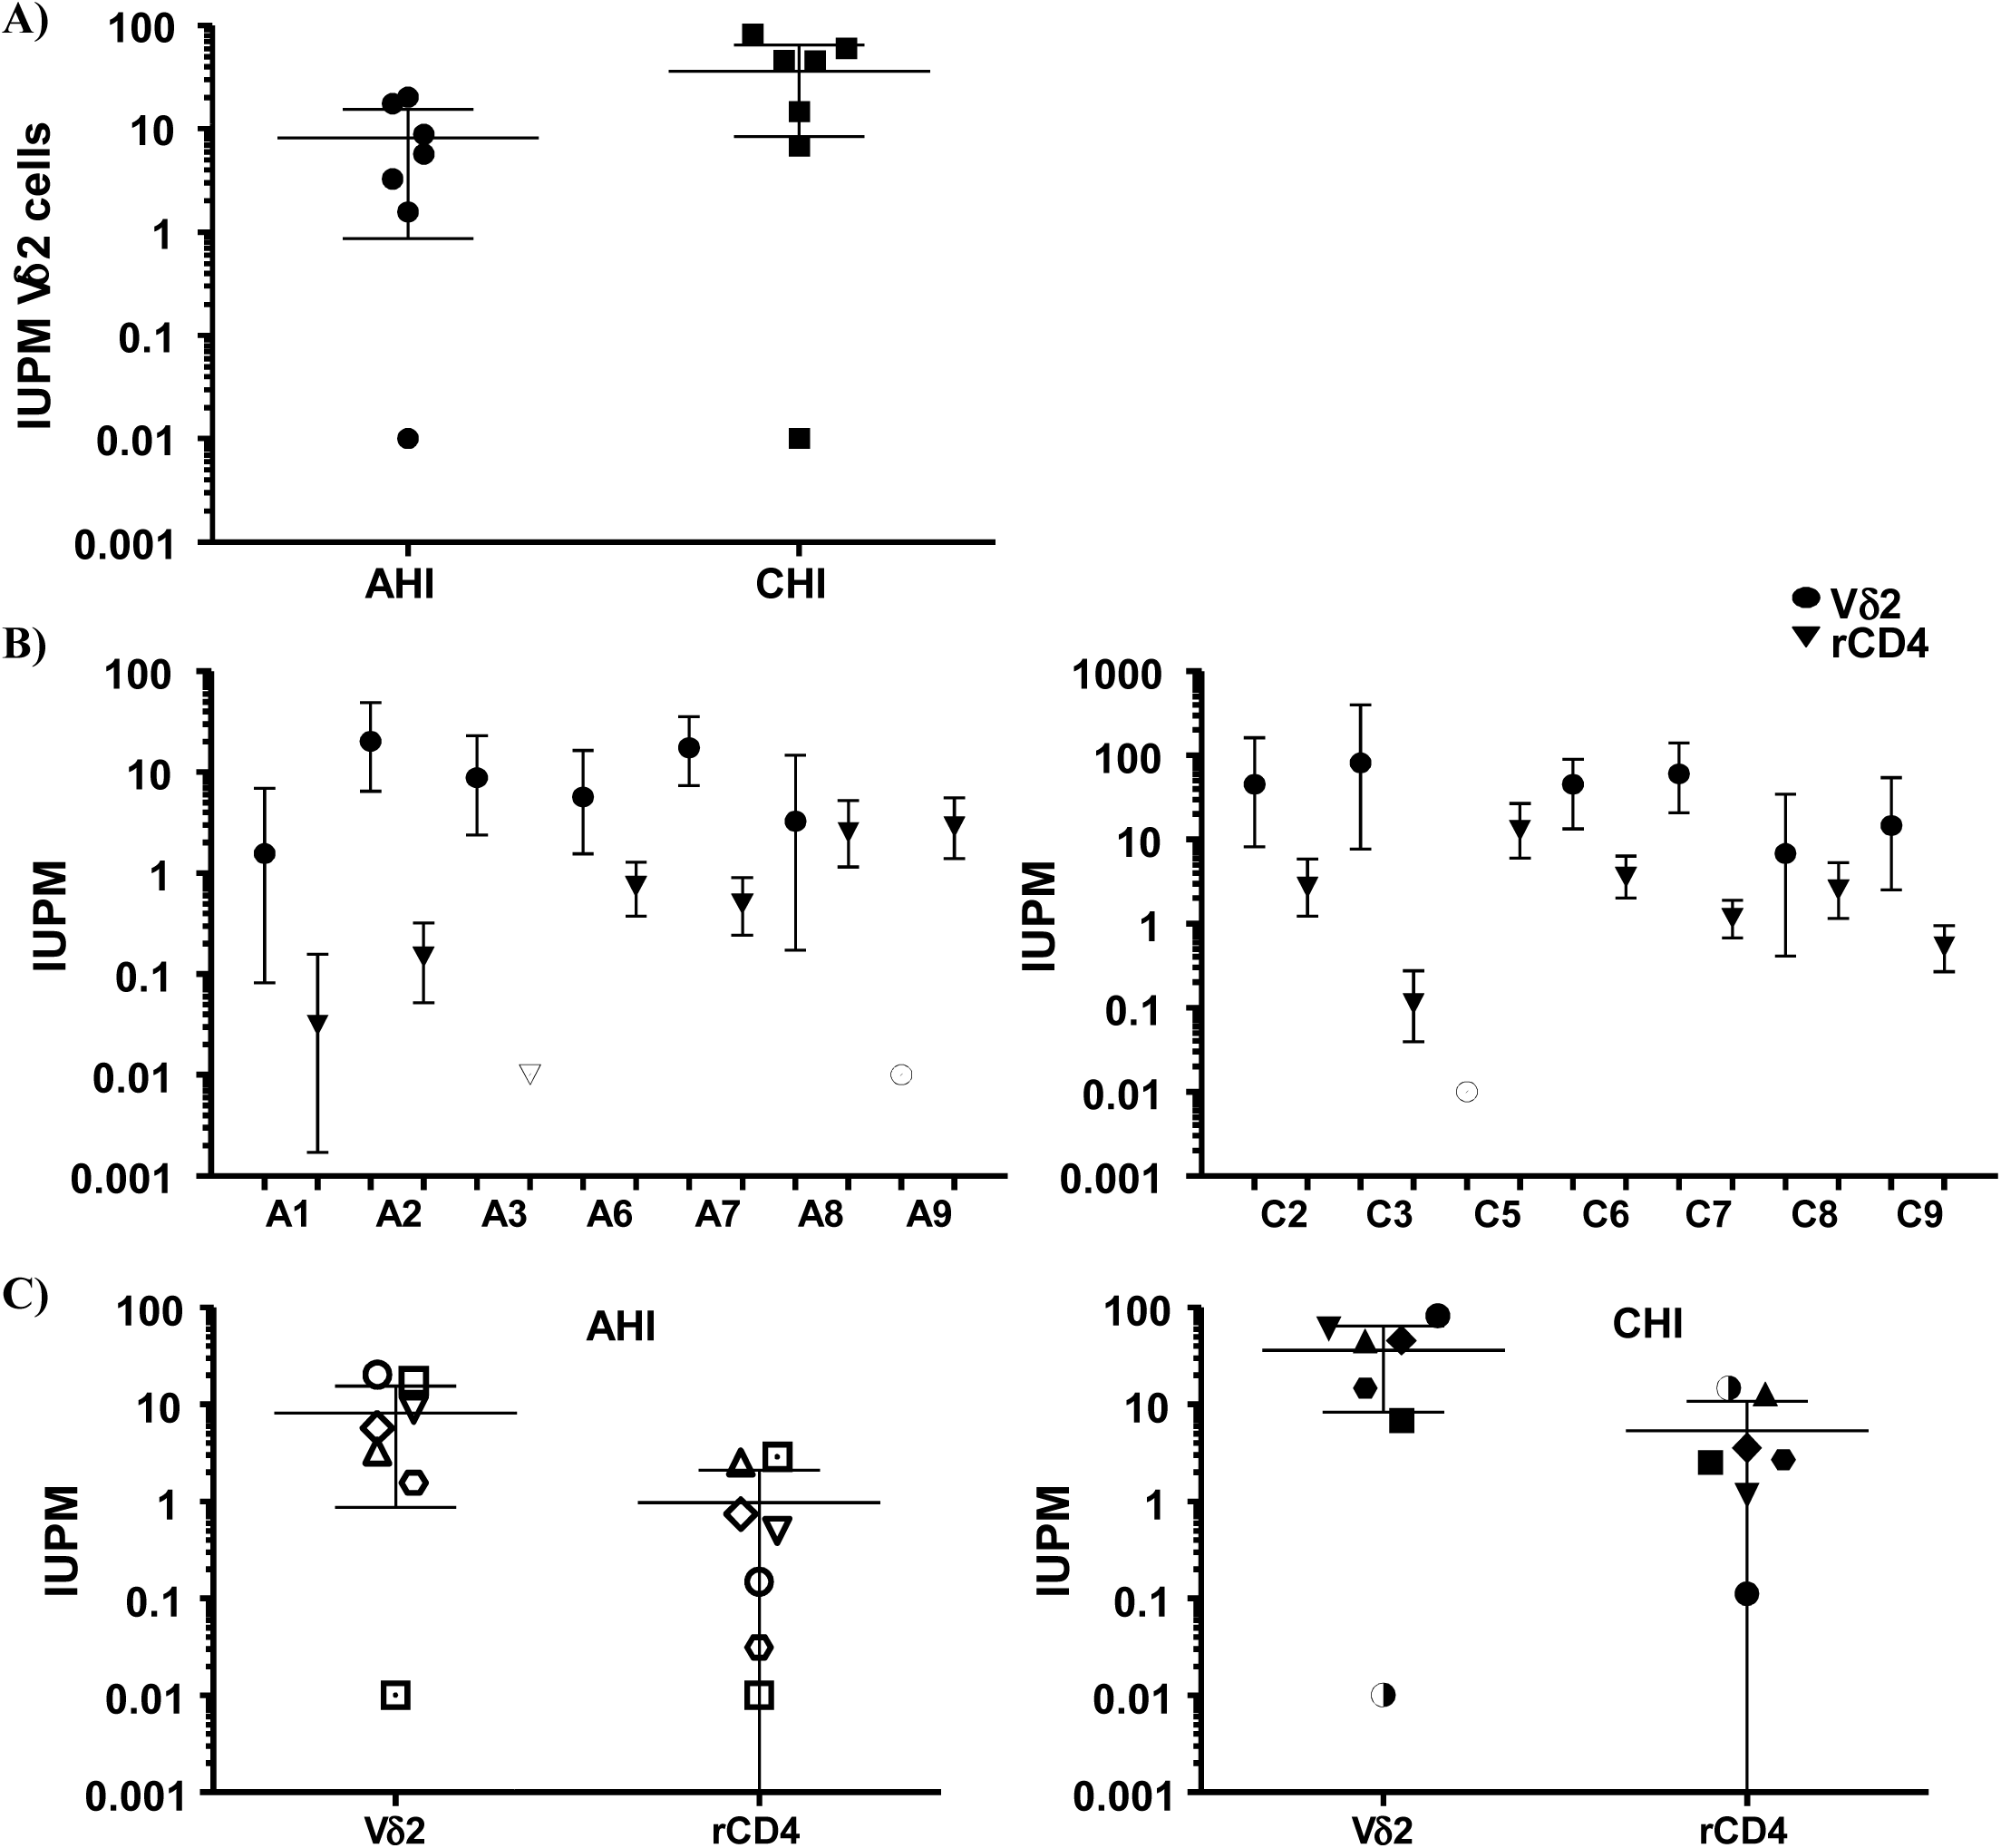 Frequency of replication-competent HIV expressed as infectious units per million (IUPM) cells.